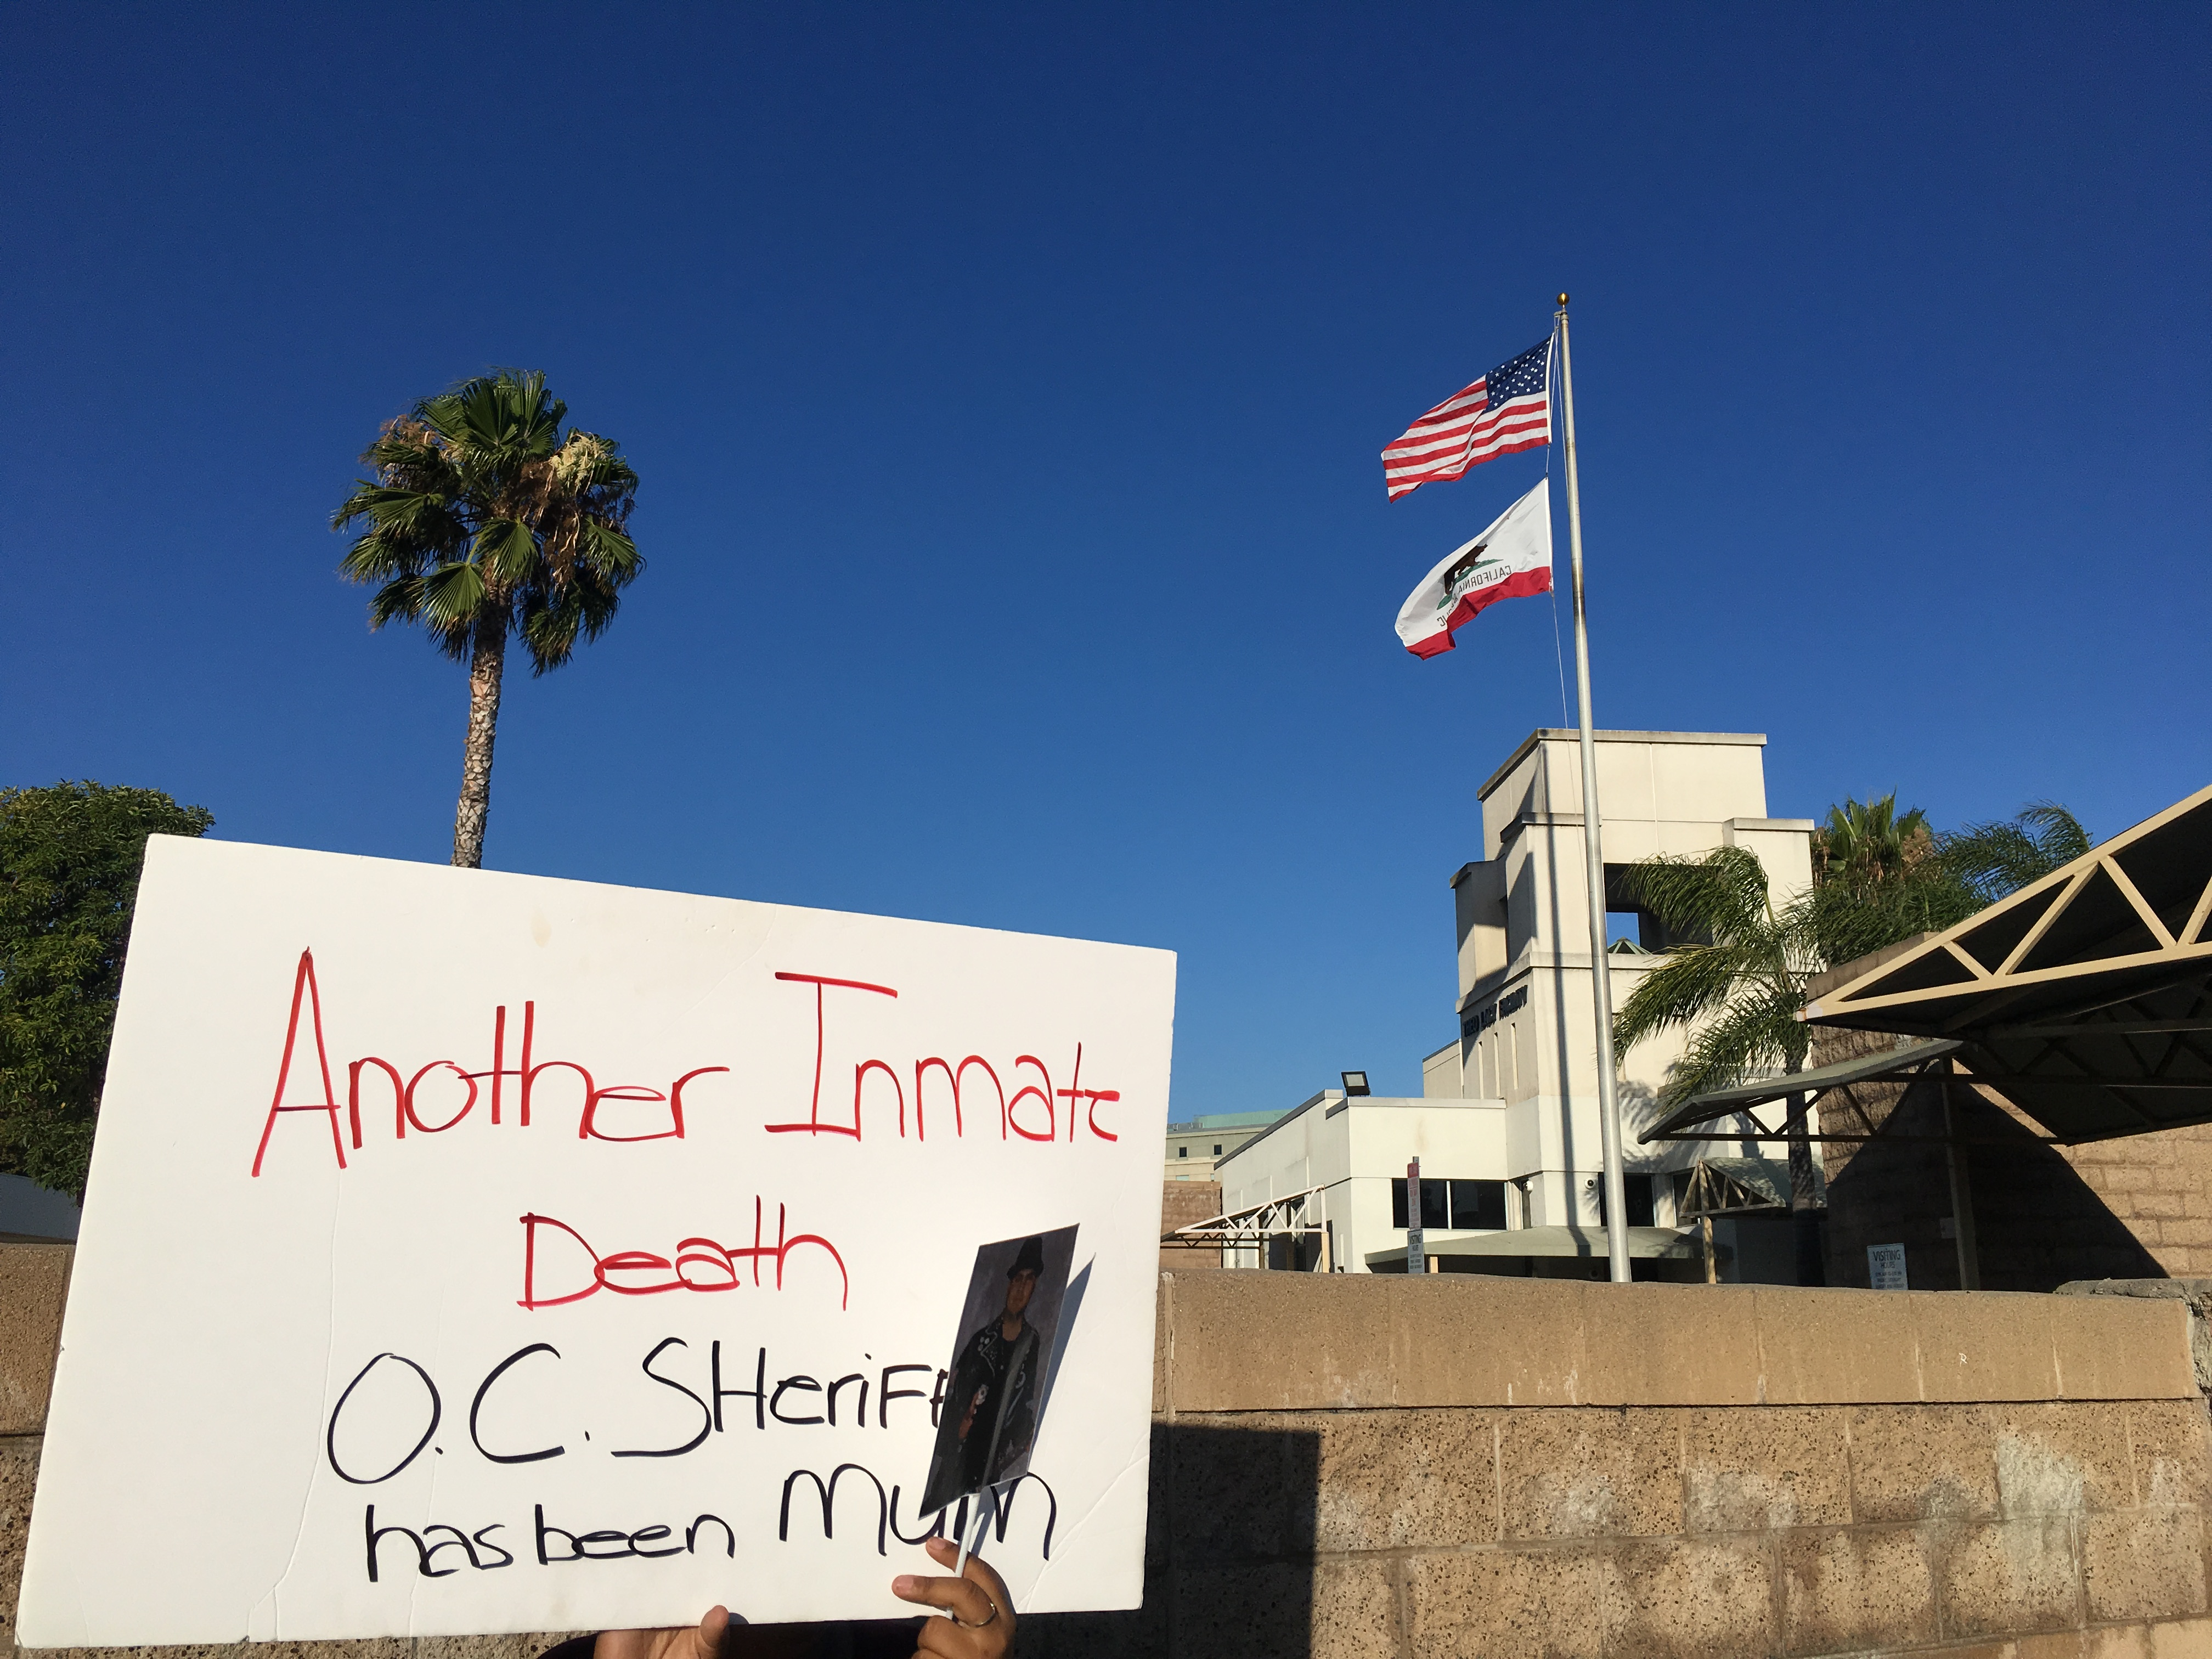 Vigil for OC Jail Inmate Deaths Sheds Light On Systemic